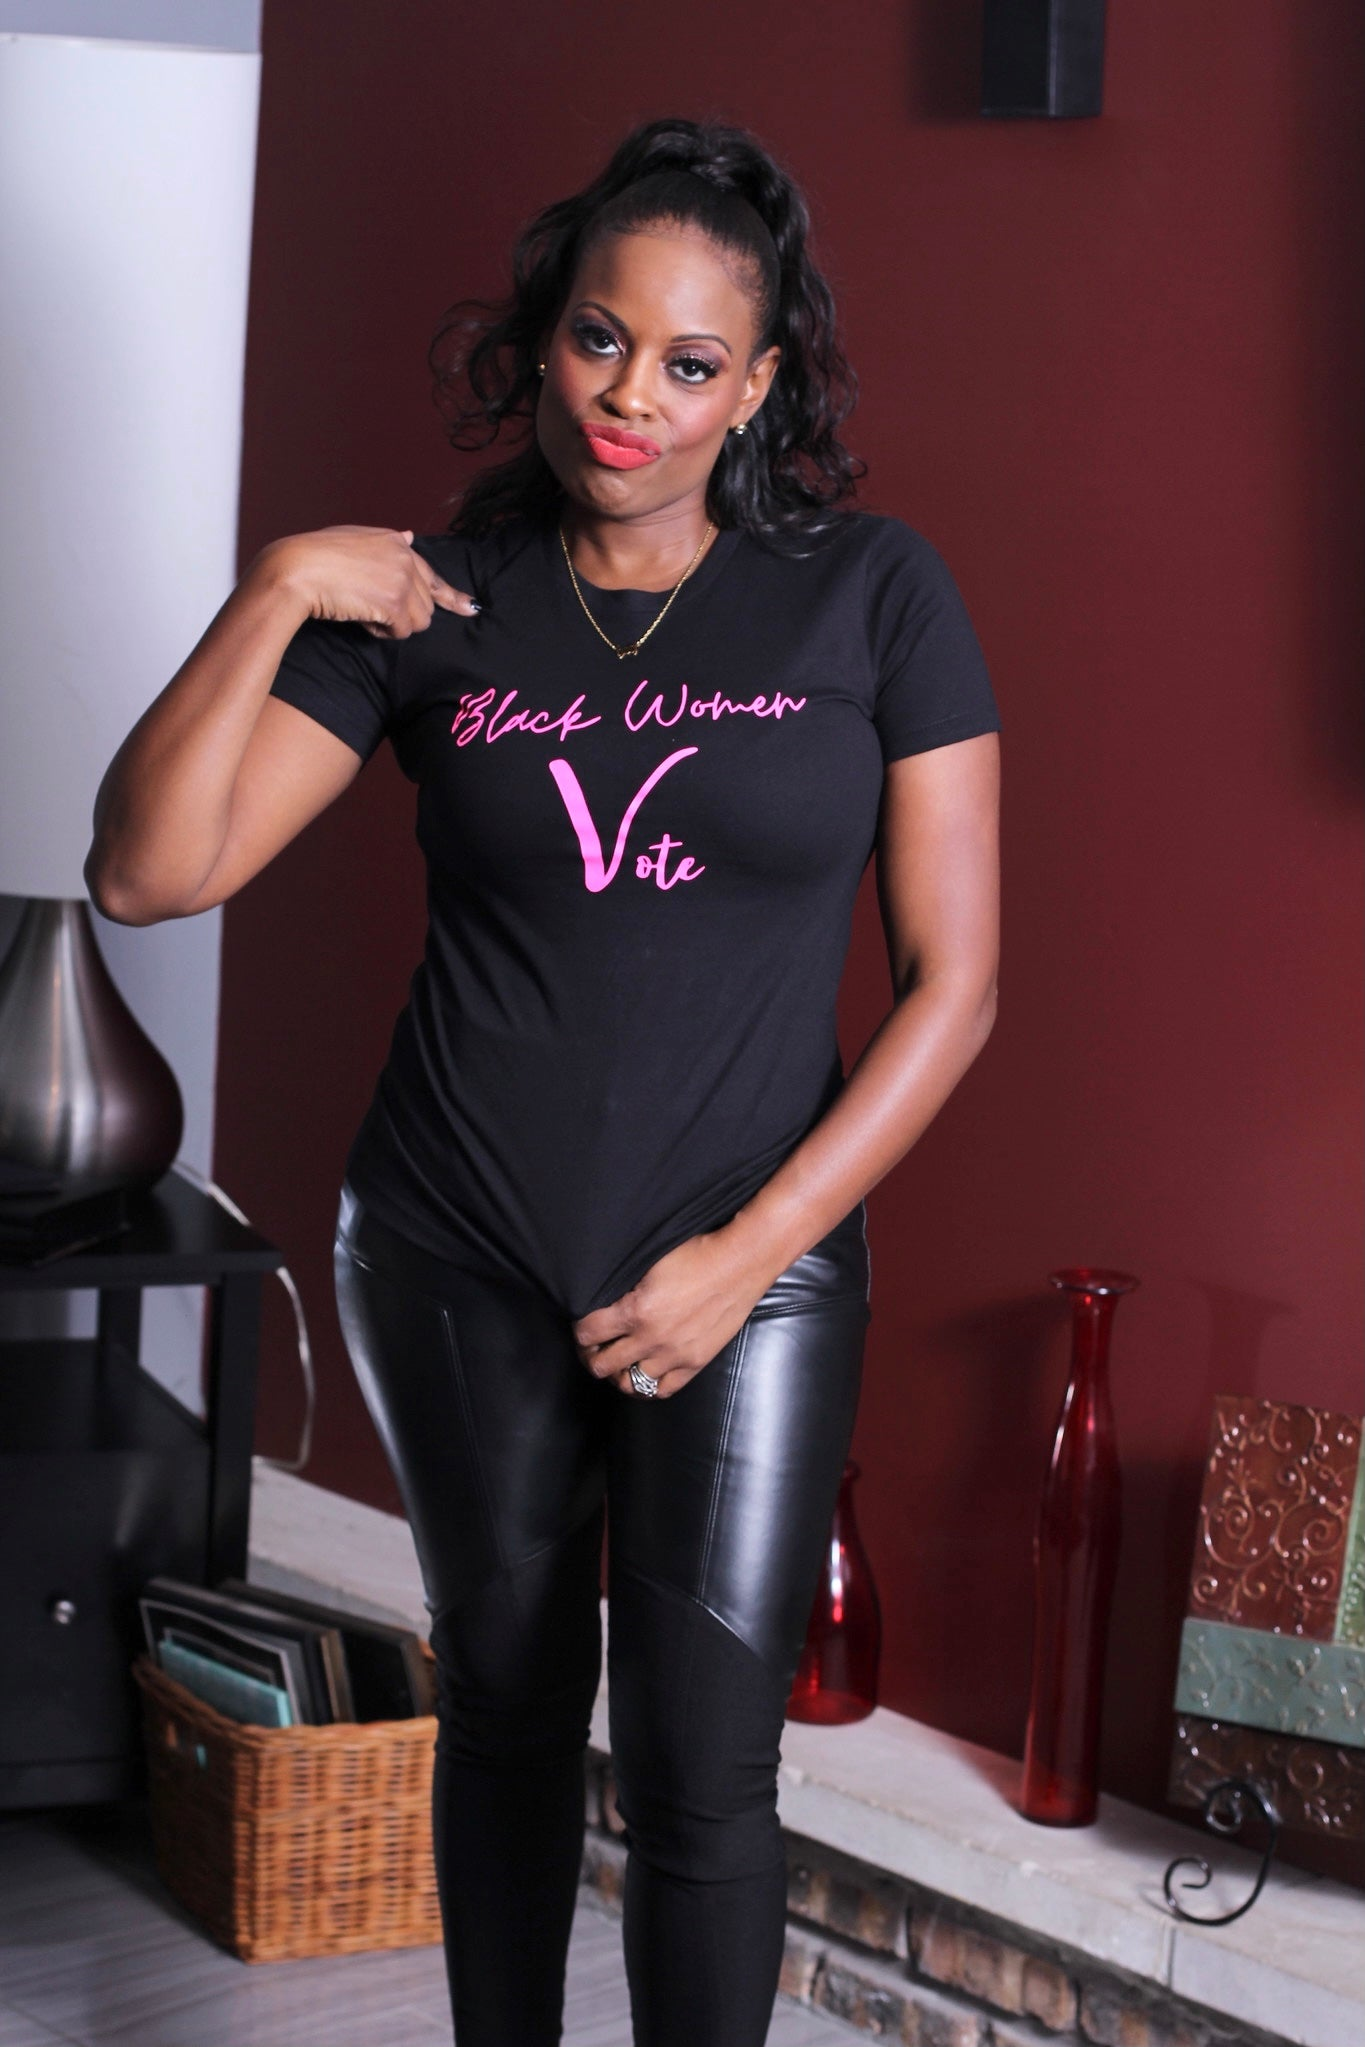 Black Women Vote Tee